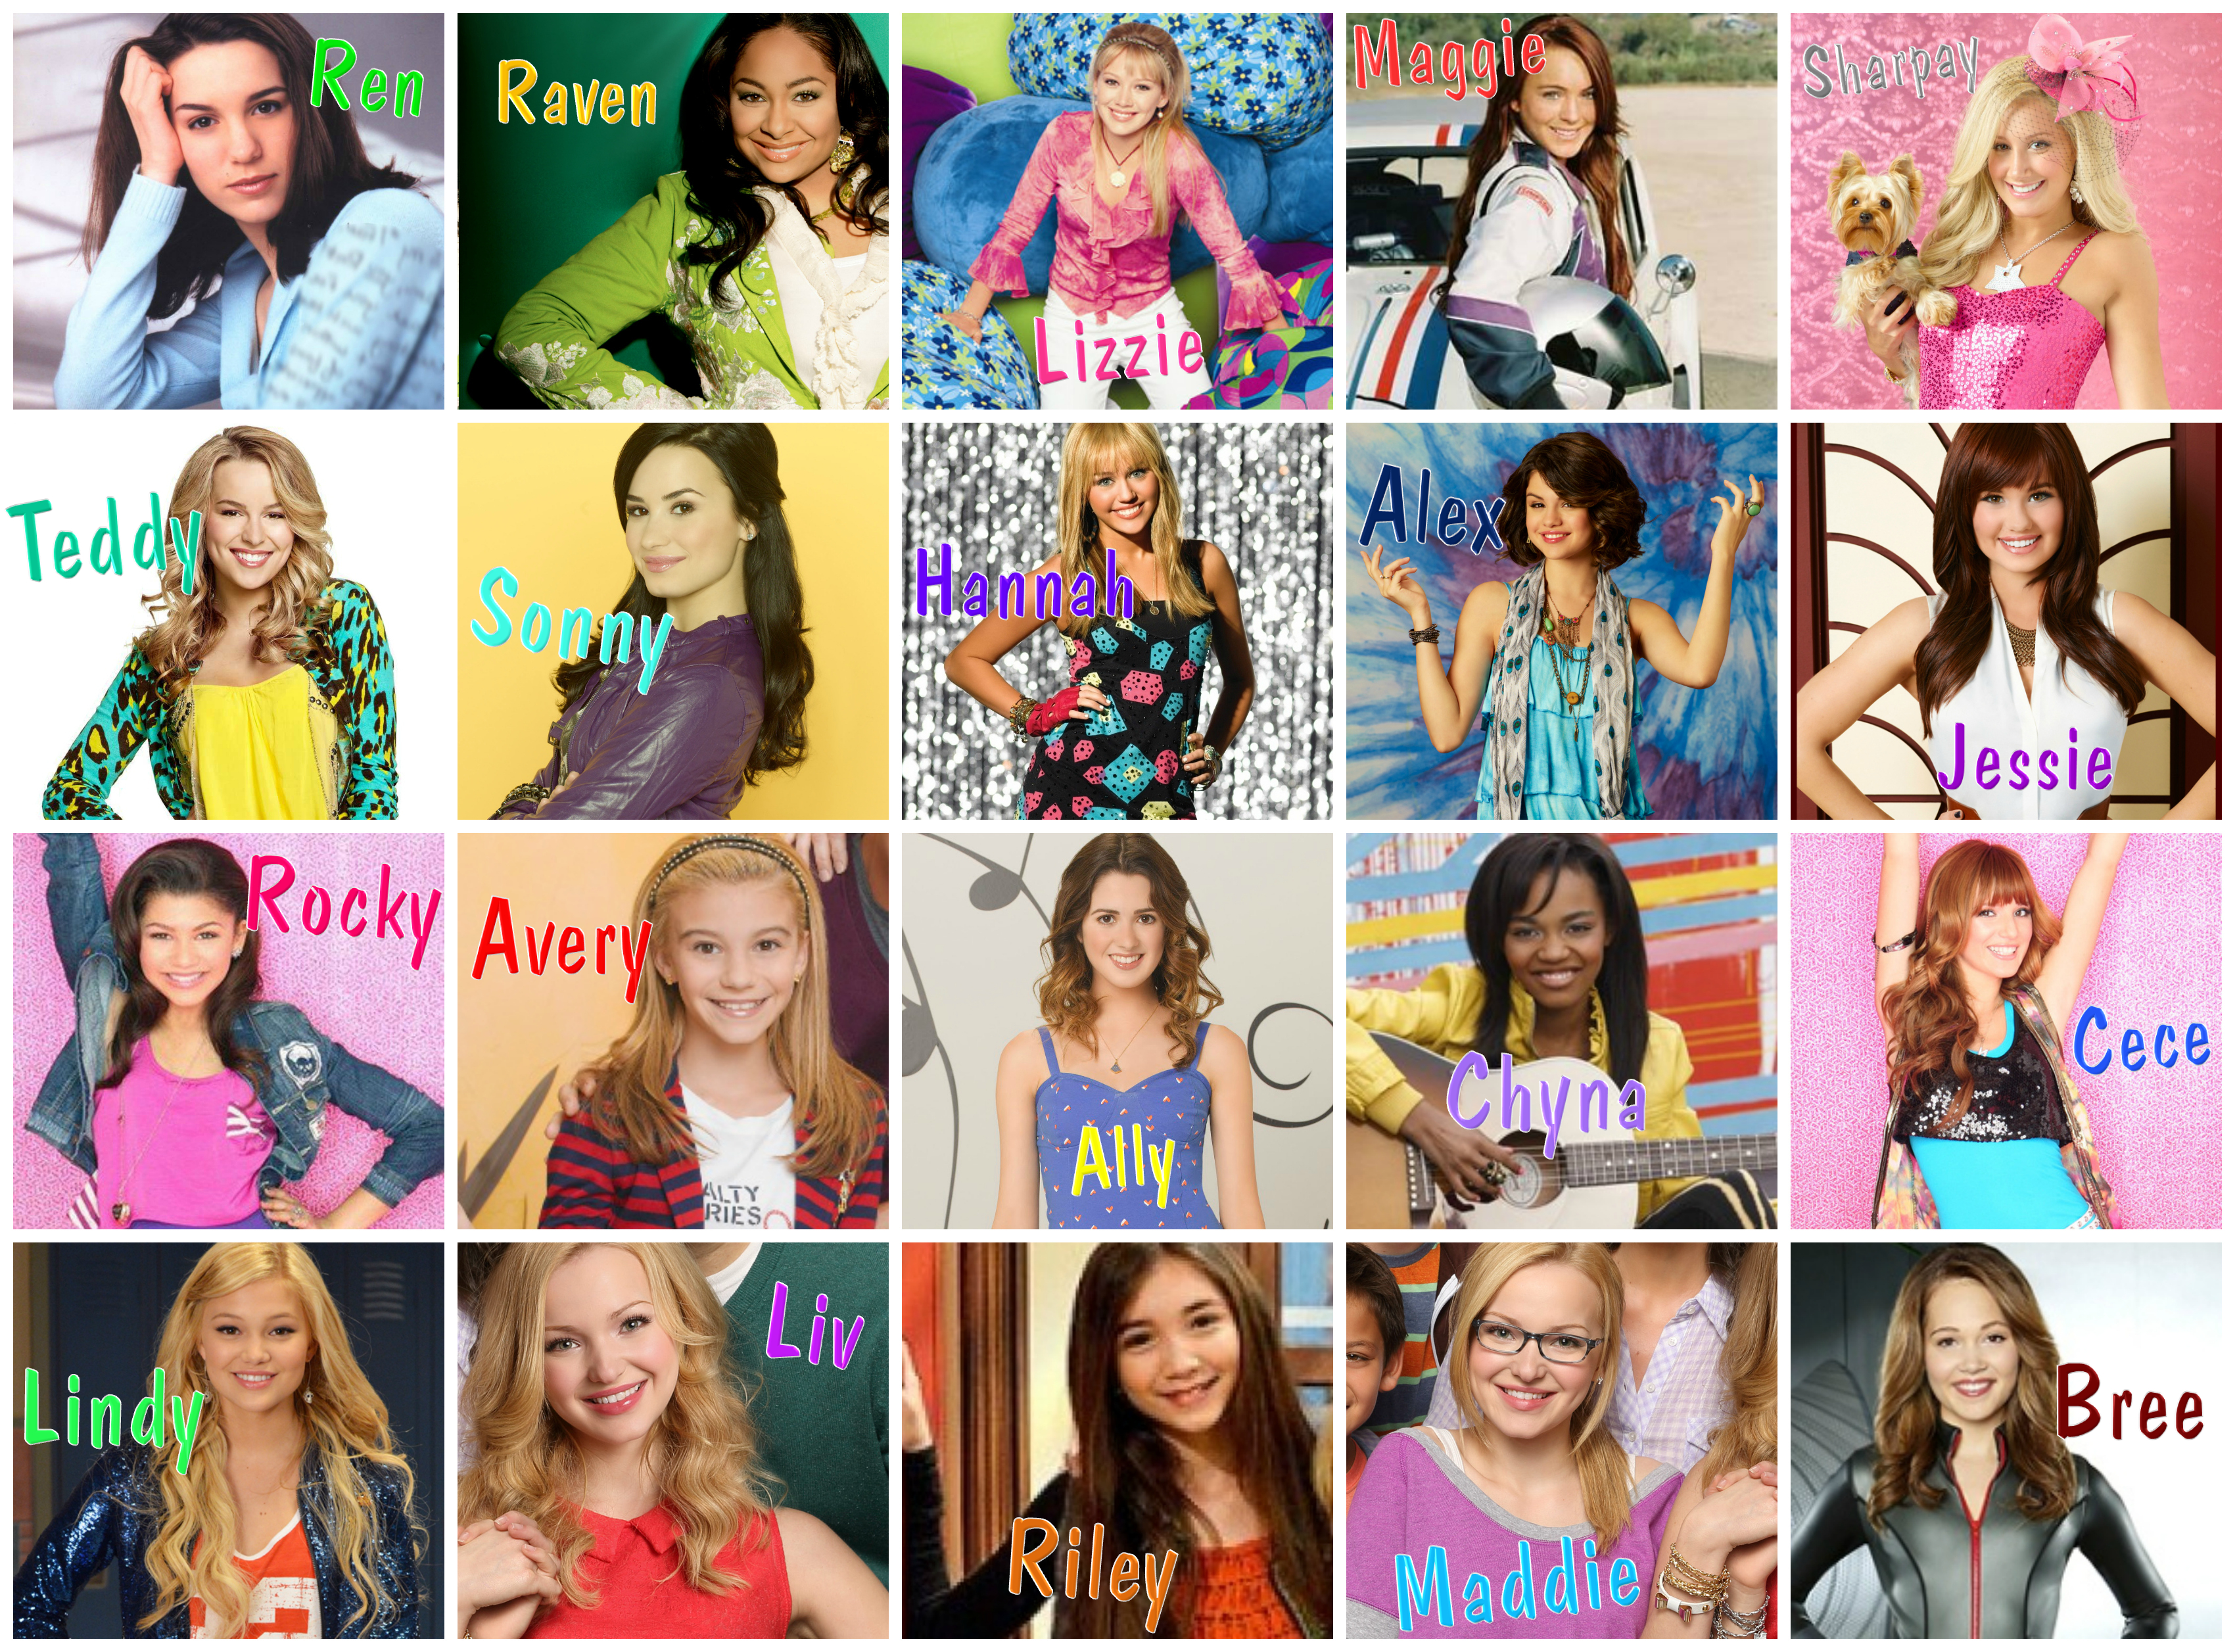 girl meets world personality quiz Now go ahead and put yourself to the test click through the gallery to see if you can guess which character wore which outfit then, drop a comment below letting us know how many you got right 1 of 14 girl meets world outfit guessing game can you guess which gmw character wore this outfit – riley.